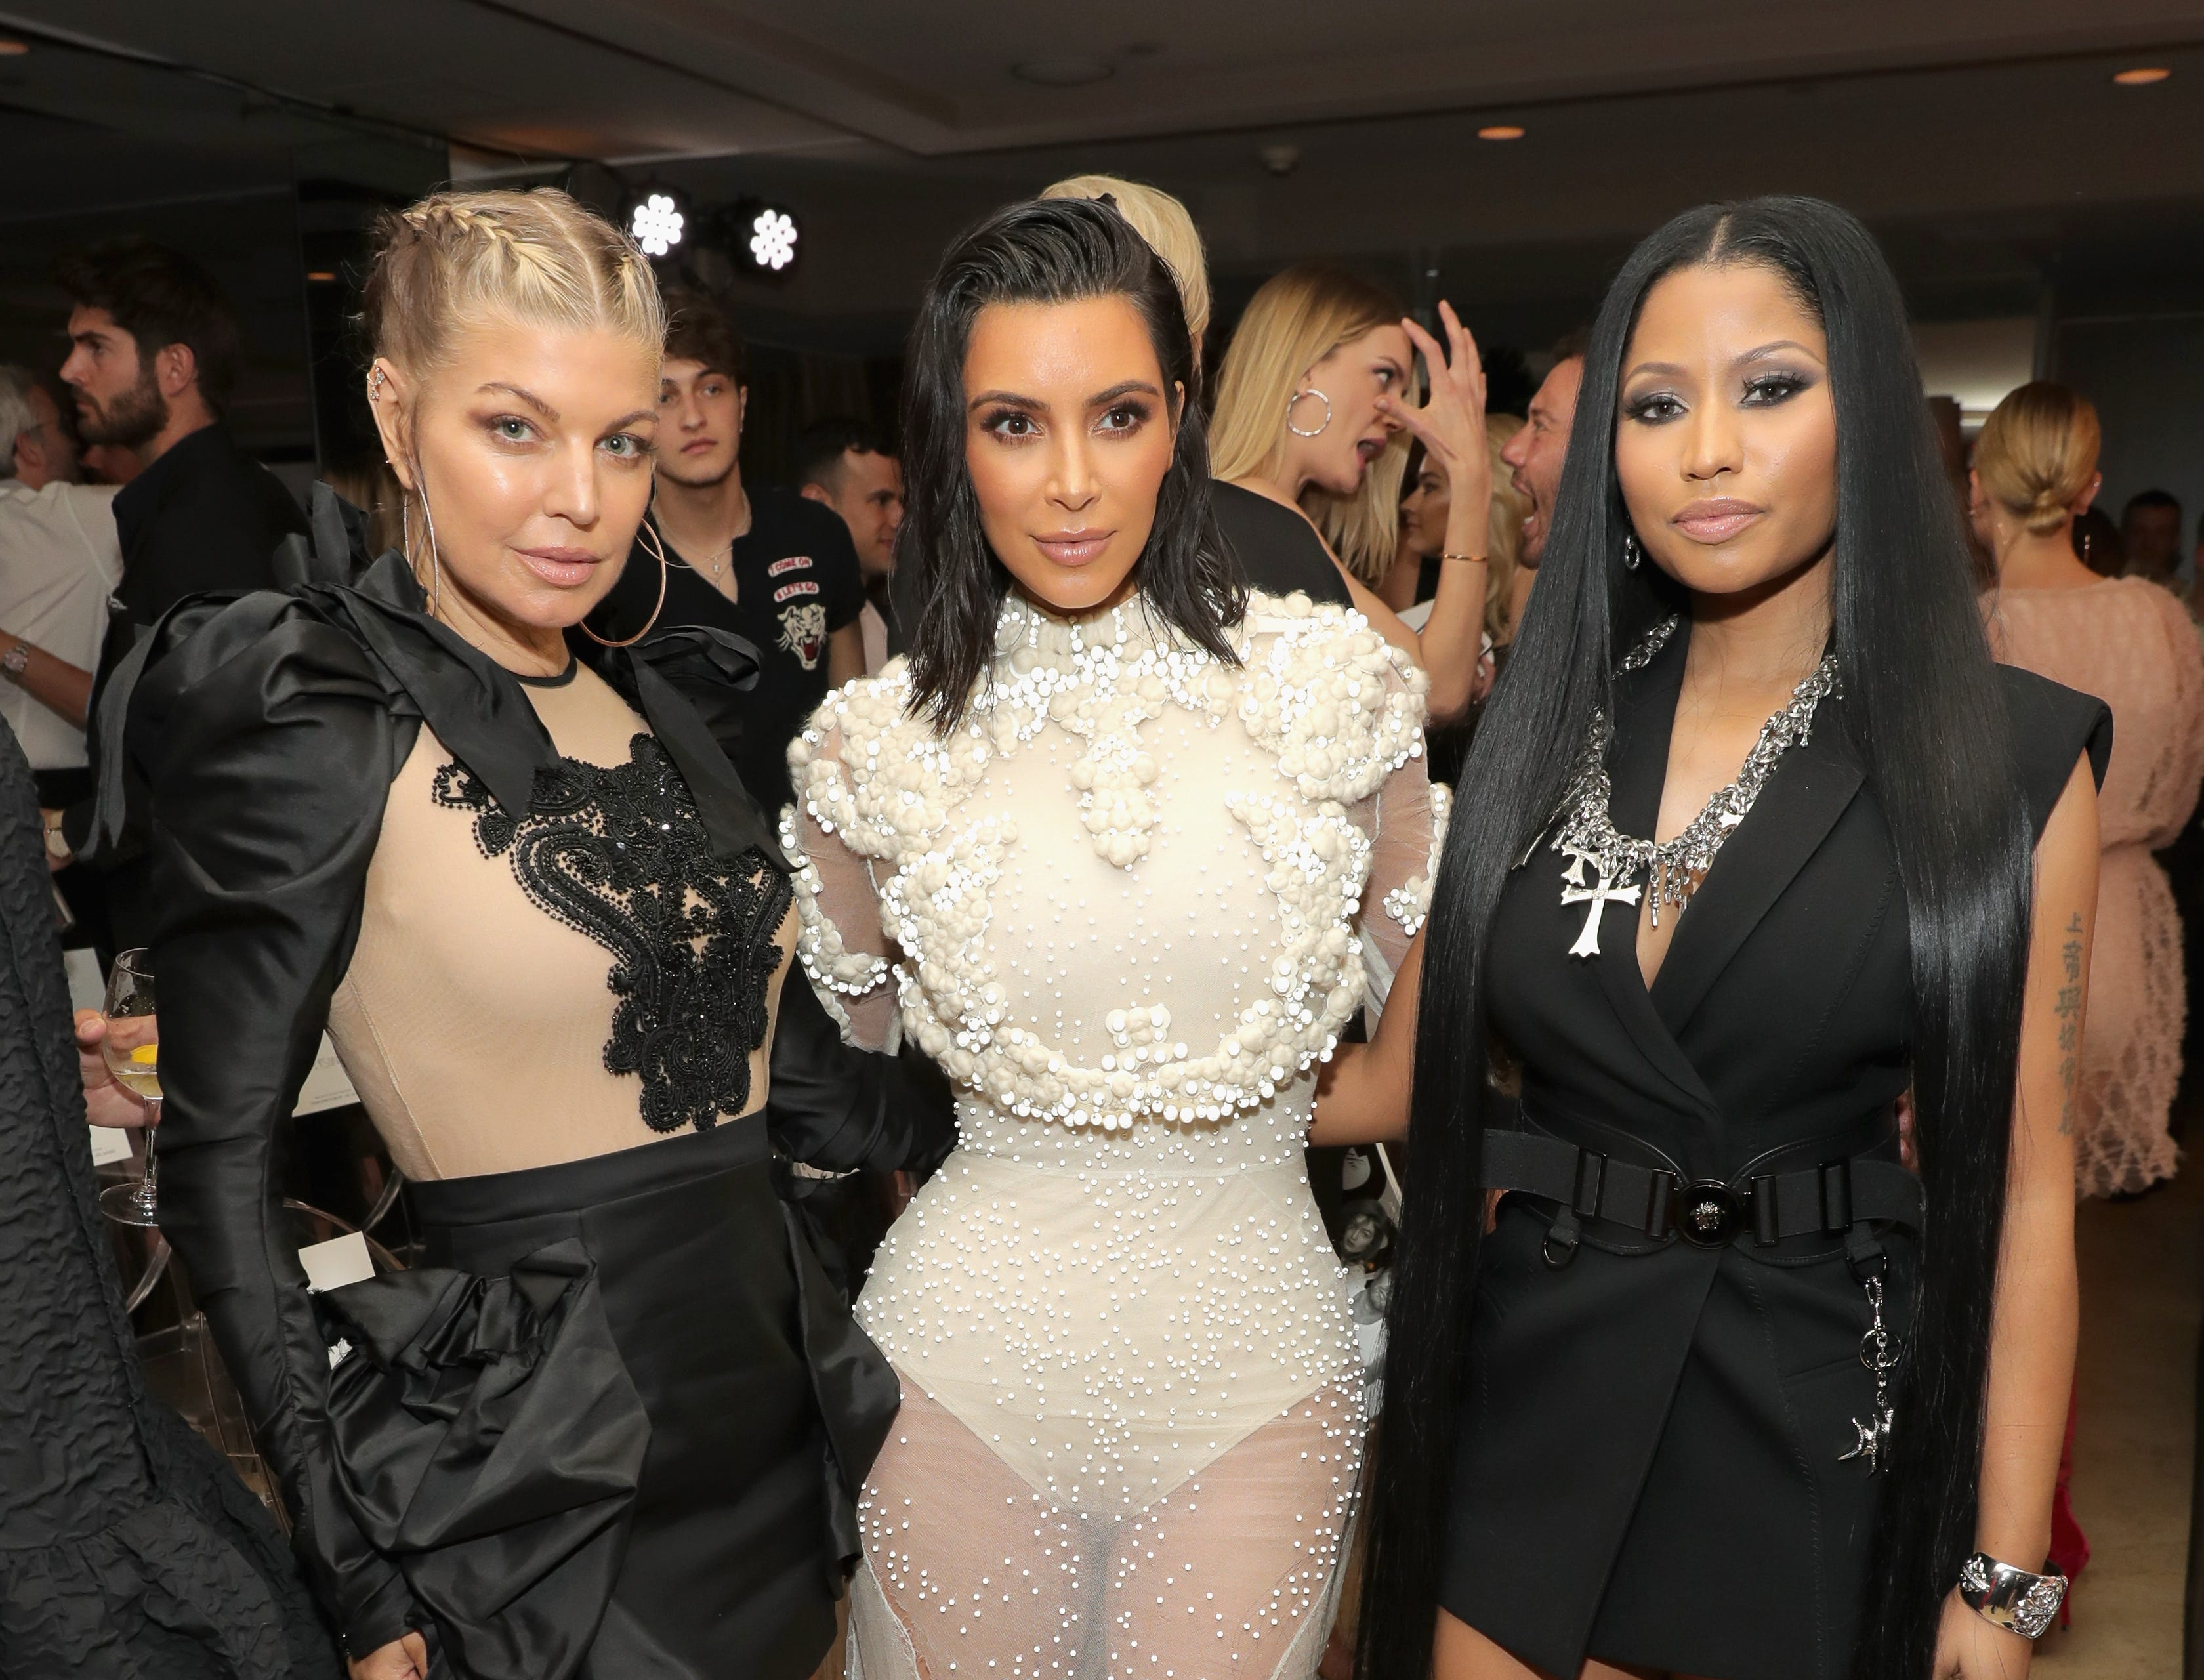 WEST HOLLYWOOD, CA - APRIL 02: (L-R) Fergie, Kim Kardashian West and Nicki Minaj attend the Daily Front Row's 3rd Annual Fashion Los Angeles Awards at Sunset Tower Hotel on April 2, 2017 in West Hollywood, California.  (Photo by Neilson Barnard/Getty Images) ORG XMIT: 700020741 ORIG FILE ID: 663911244